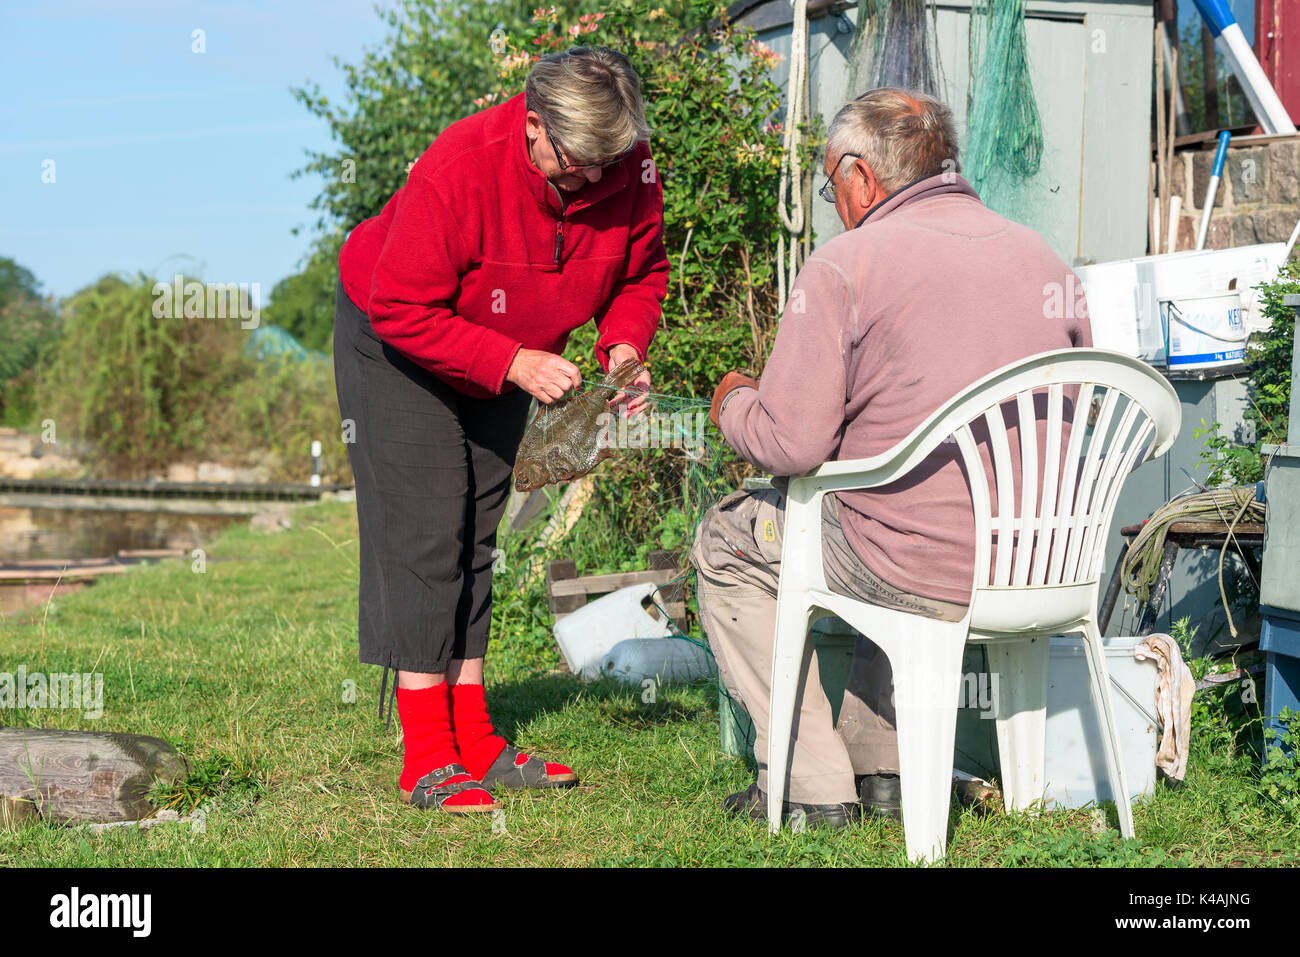 Karlskrona, Sweden - August 28, 2017: Real life documentary of coastal lifestyle. Senior couple untangling fishing nets and removing a flounder from t - Stock Image